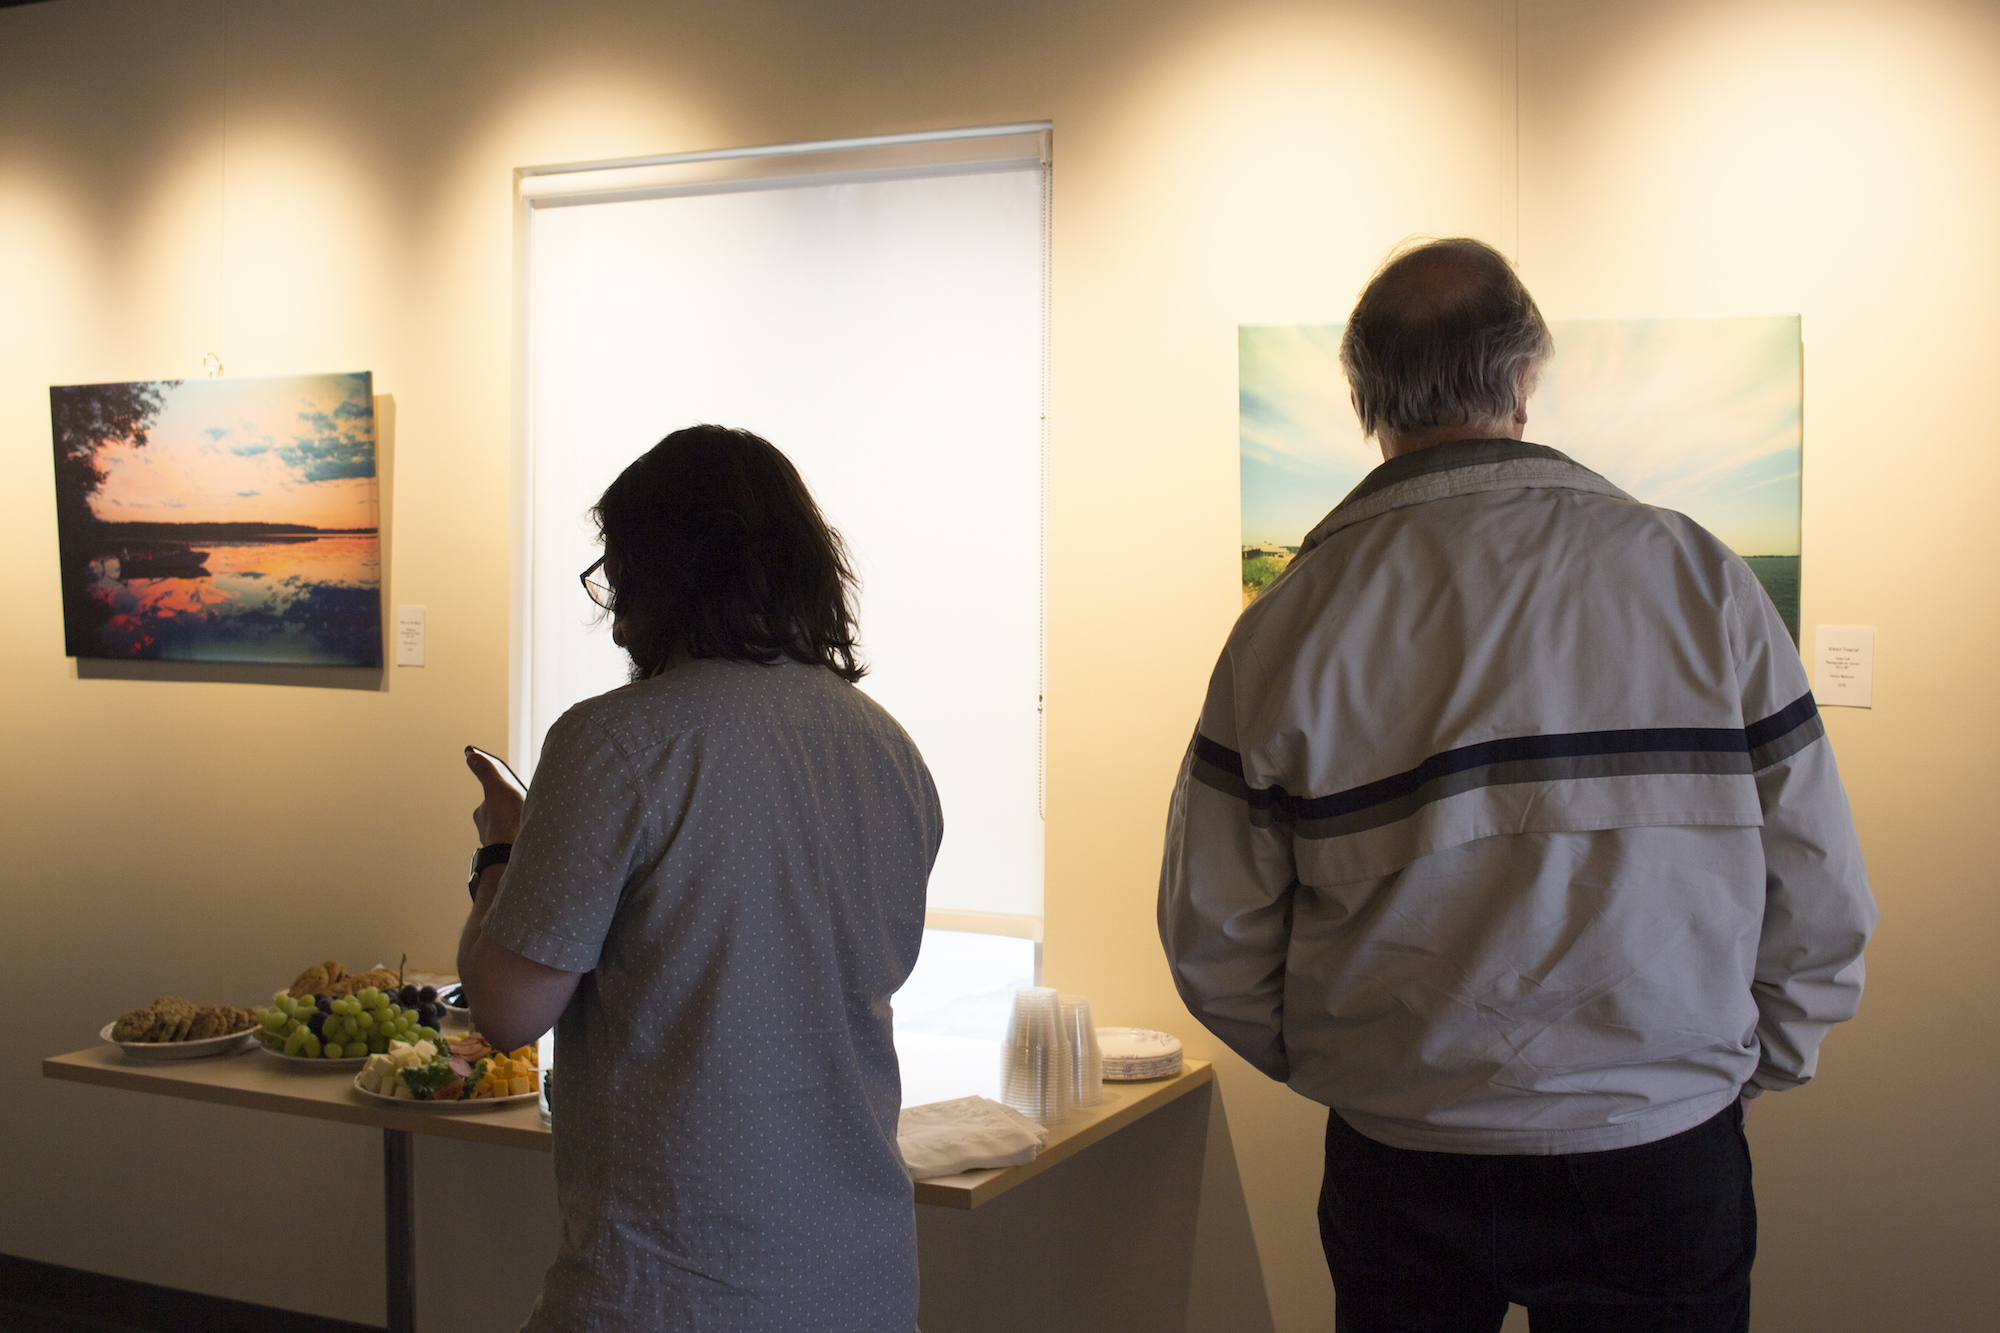 Geena Matuson's solo show reception at Medfield TV. April, 2016.